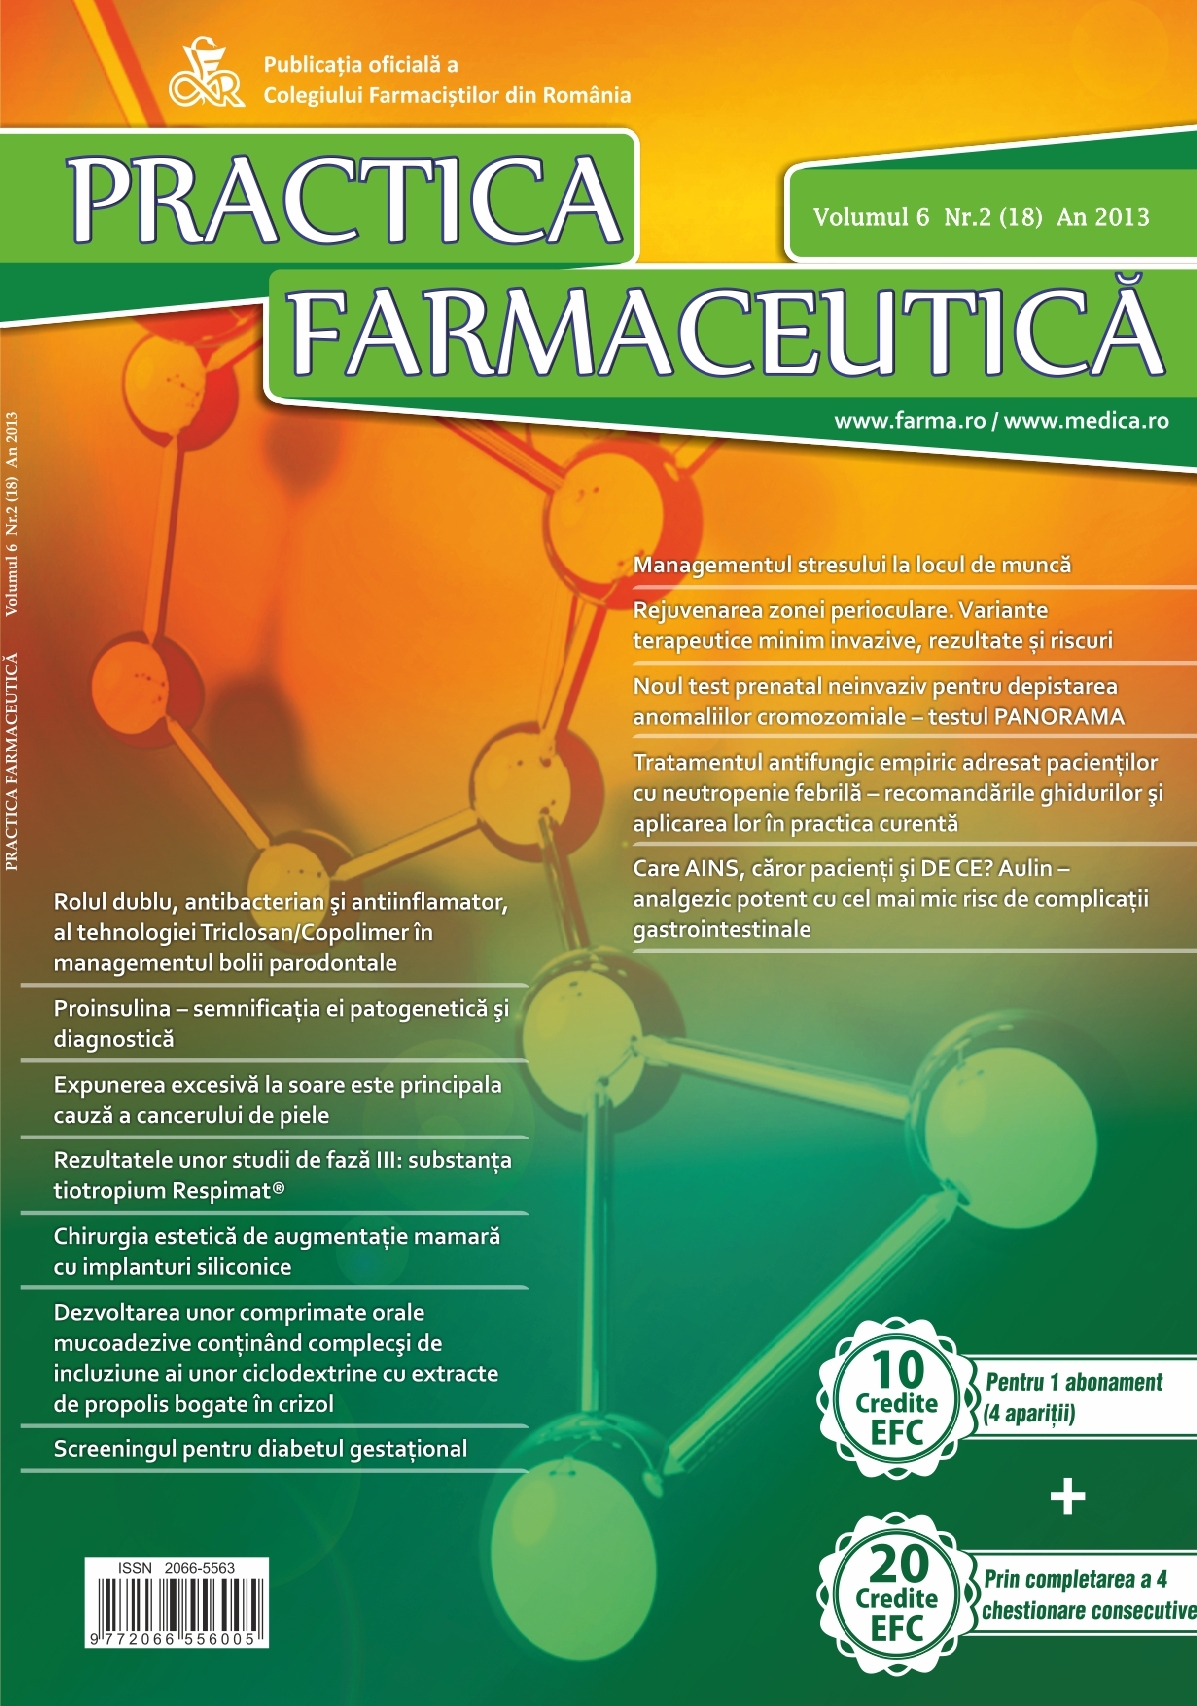 Revista Practica Farmaceutica, Vol. 6, Nr. 2 (18), 2013